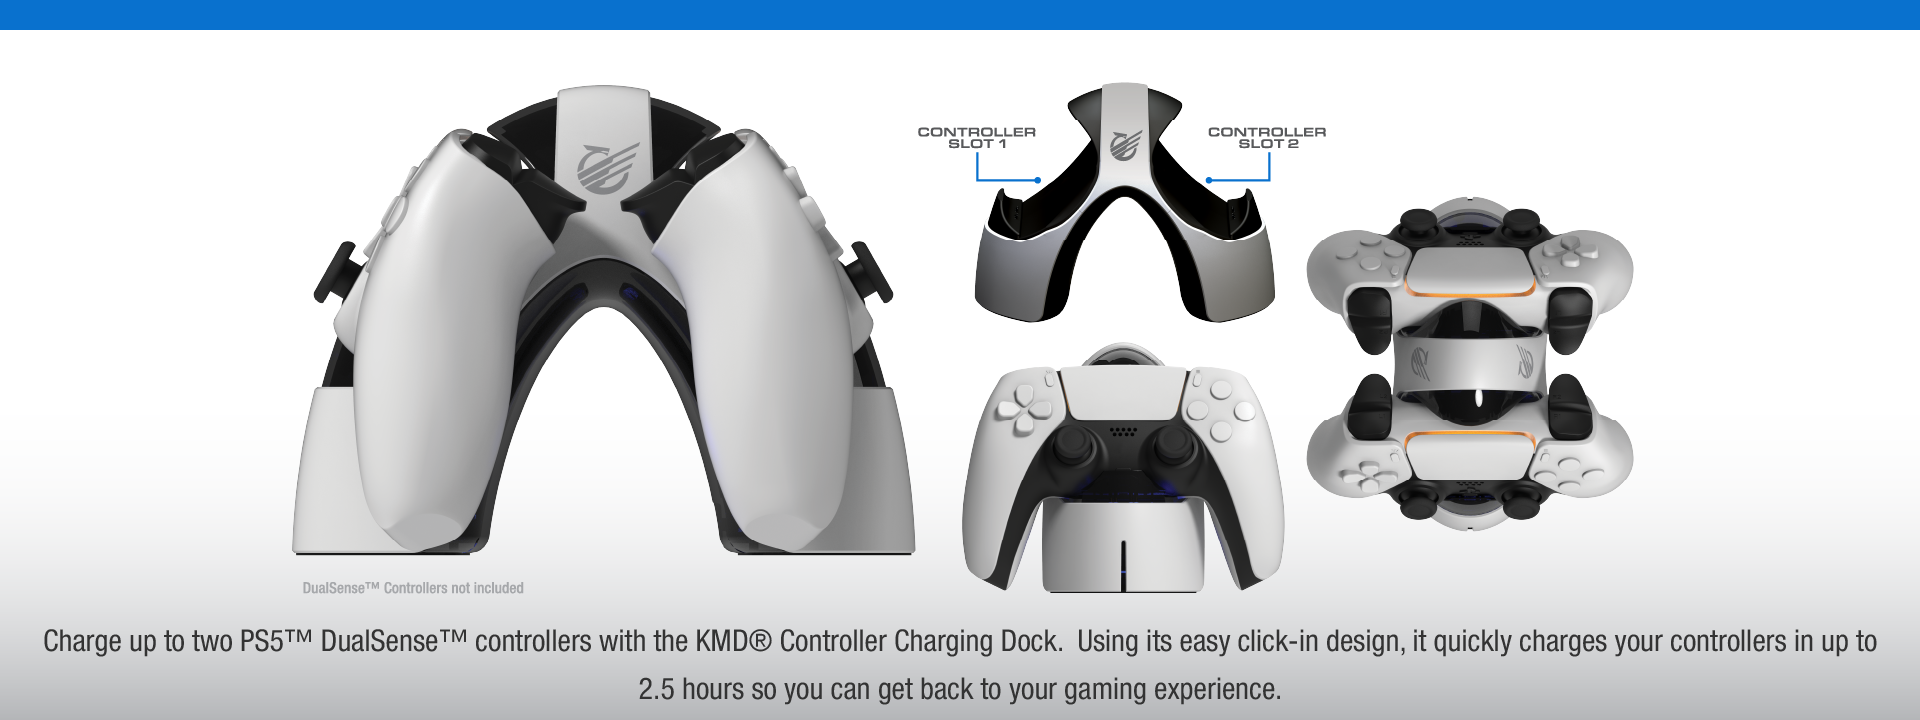 KMD PS5 Charge Dock 2